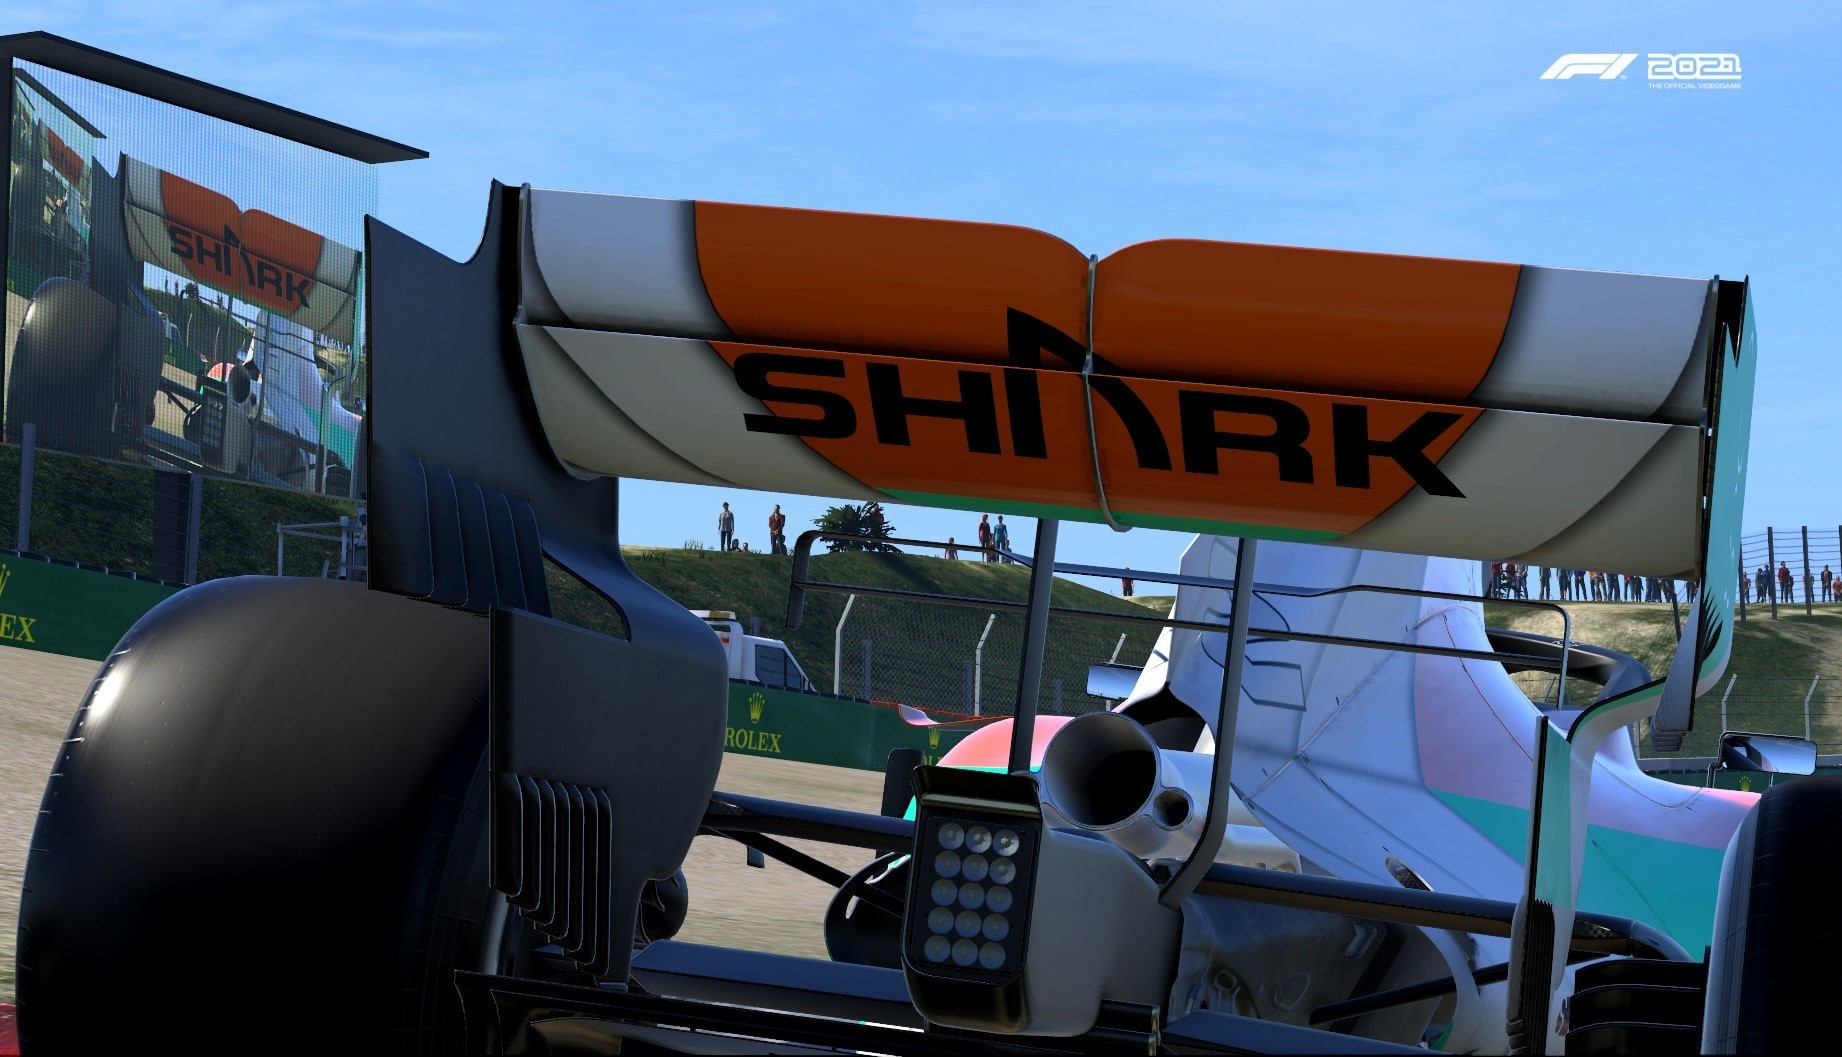 An image of the Shark logo on the rear wing of an F1 car in F1 2021.